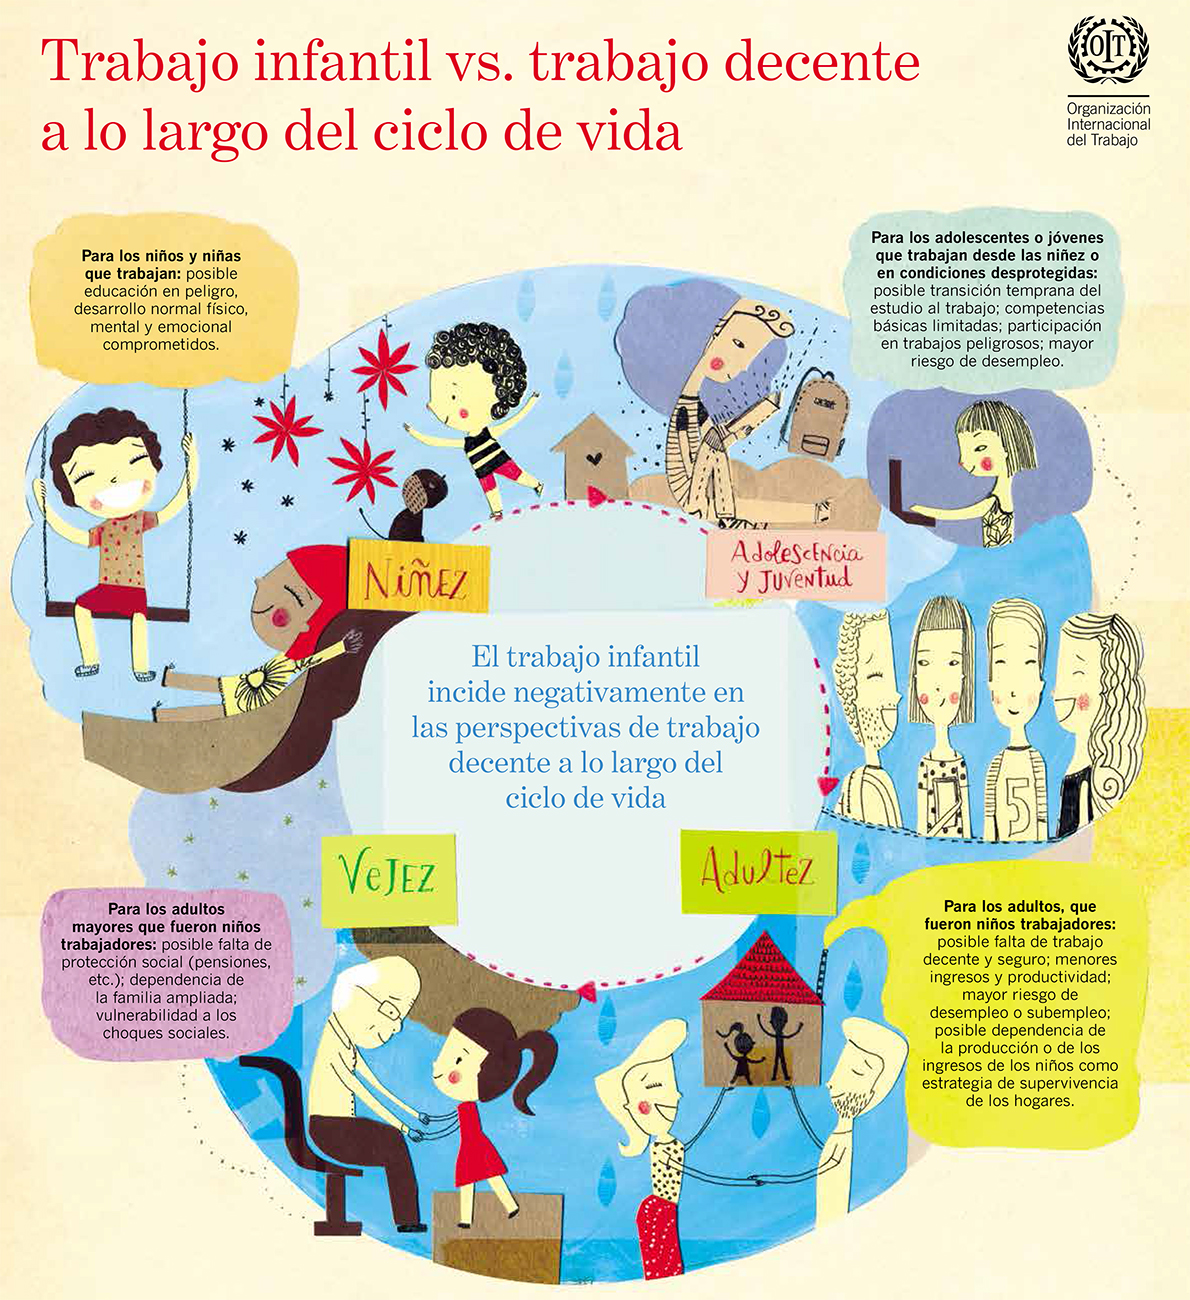 folleto_CAPTURA 2_trabajo decente vs trabajo infantil-1